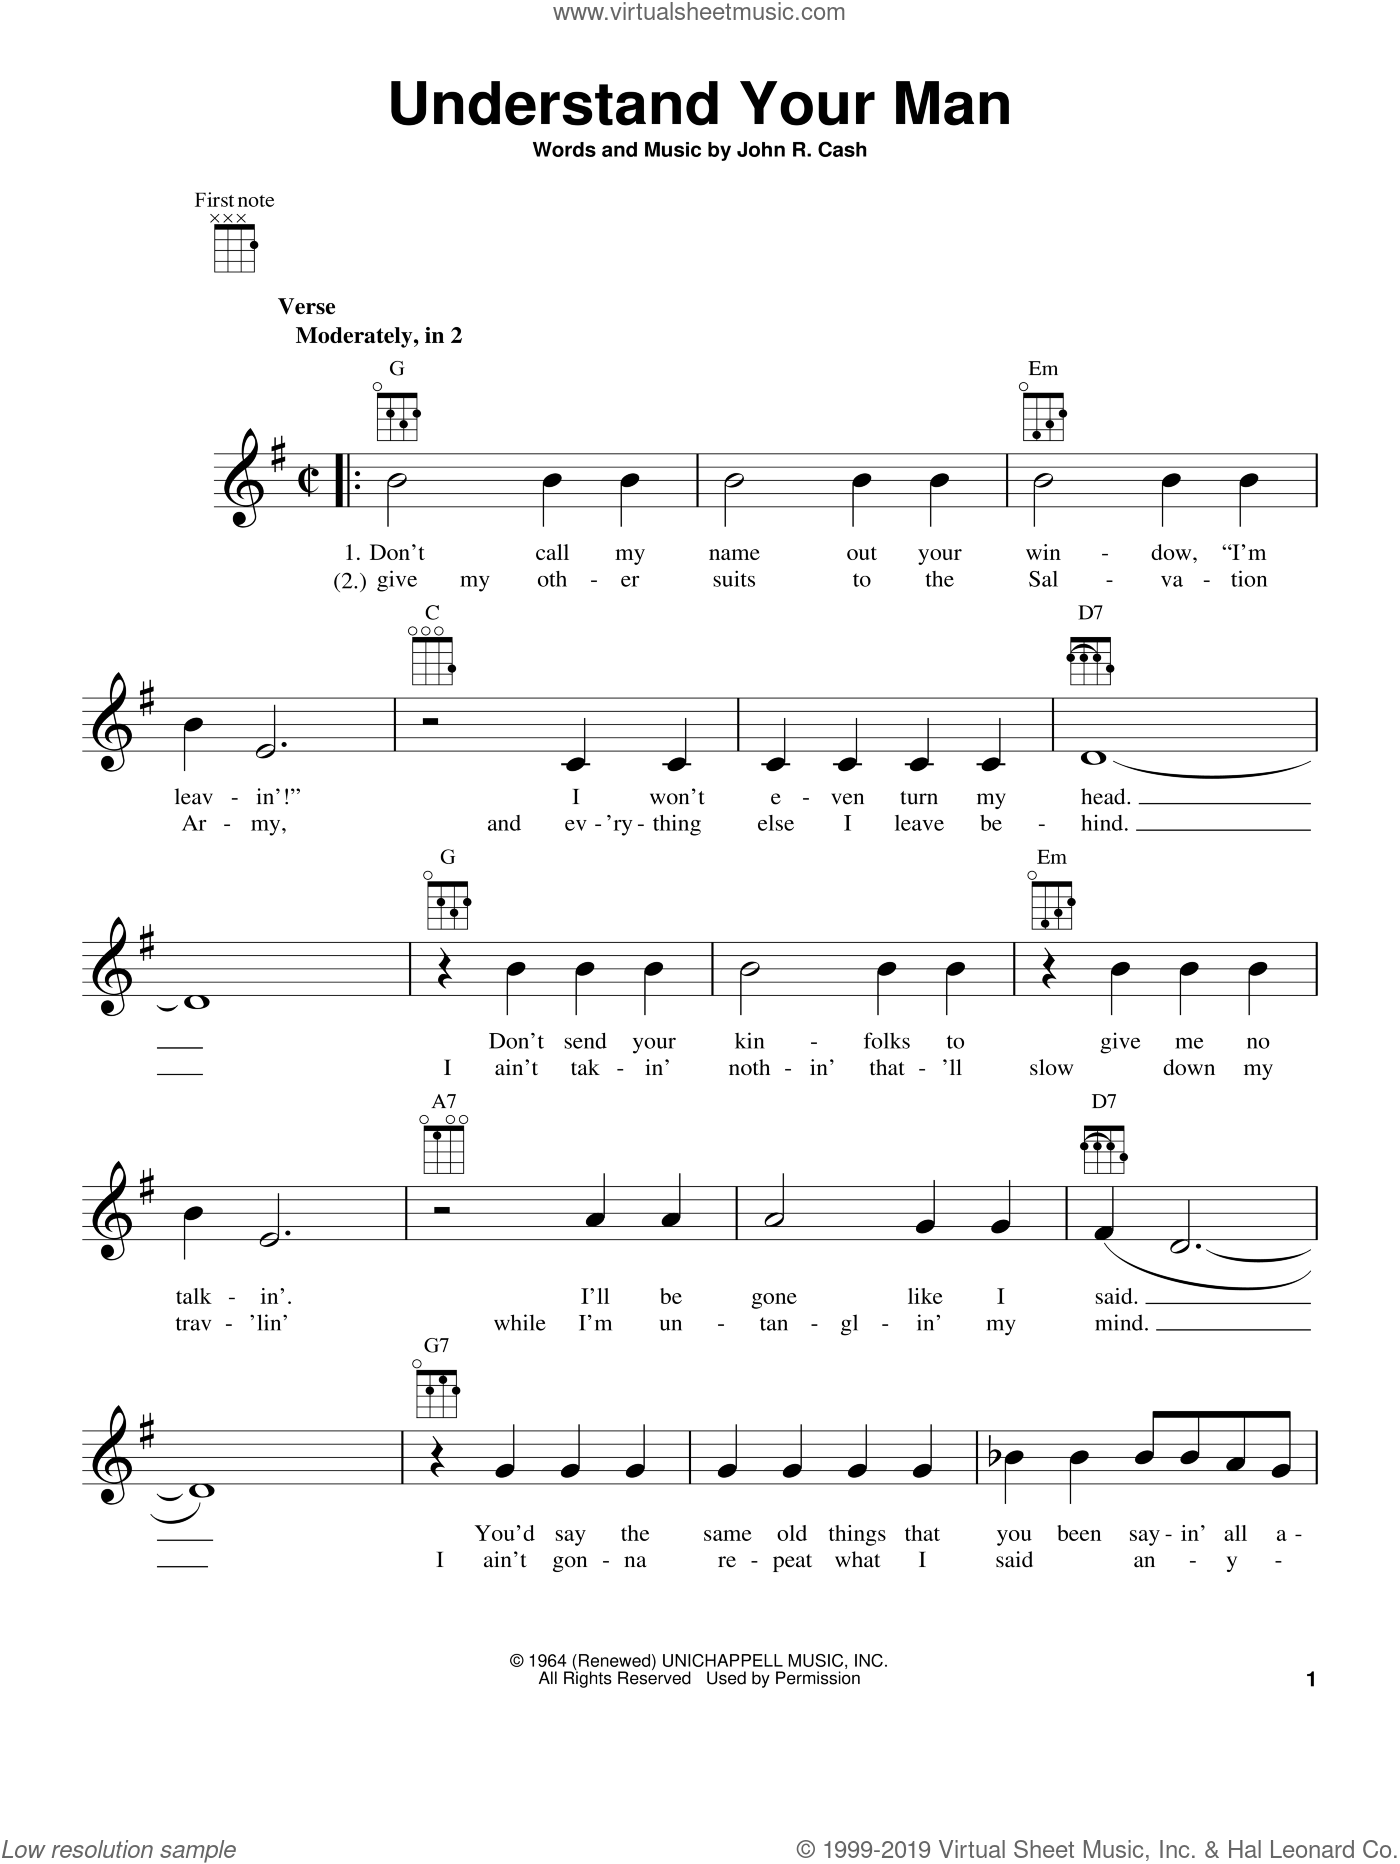 Understand Your Man sheet music for ukulele by Johnny Cash, intermediate